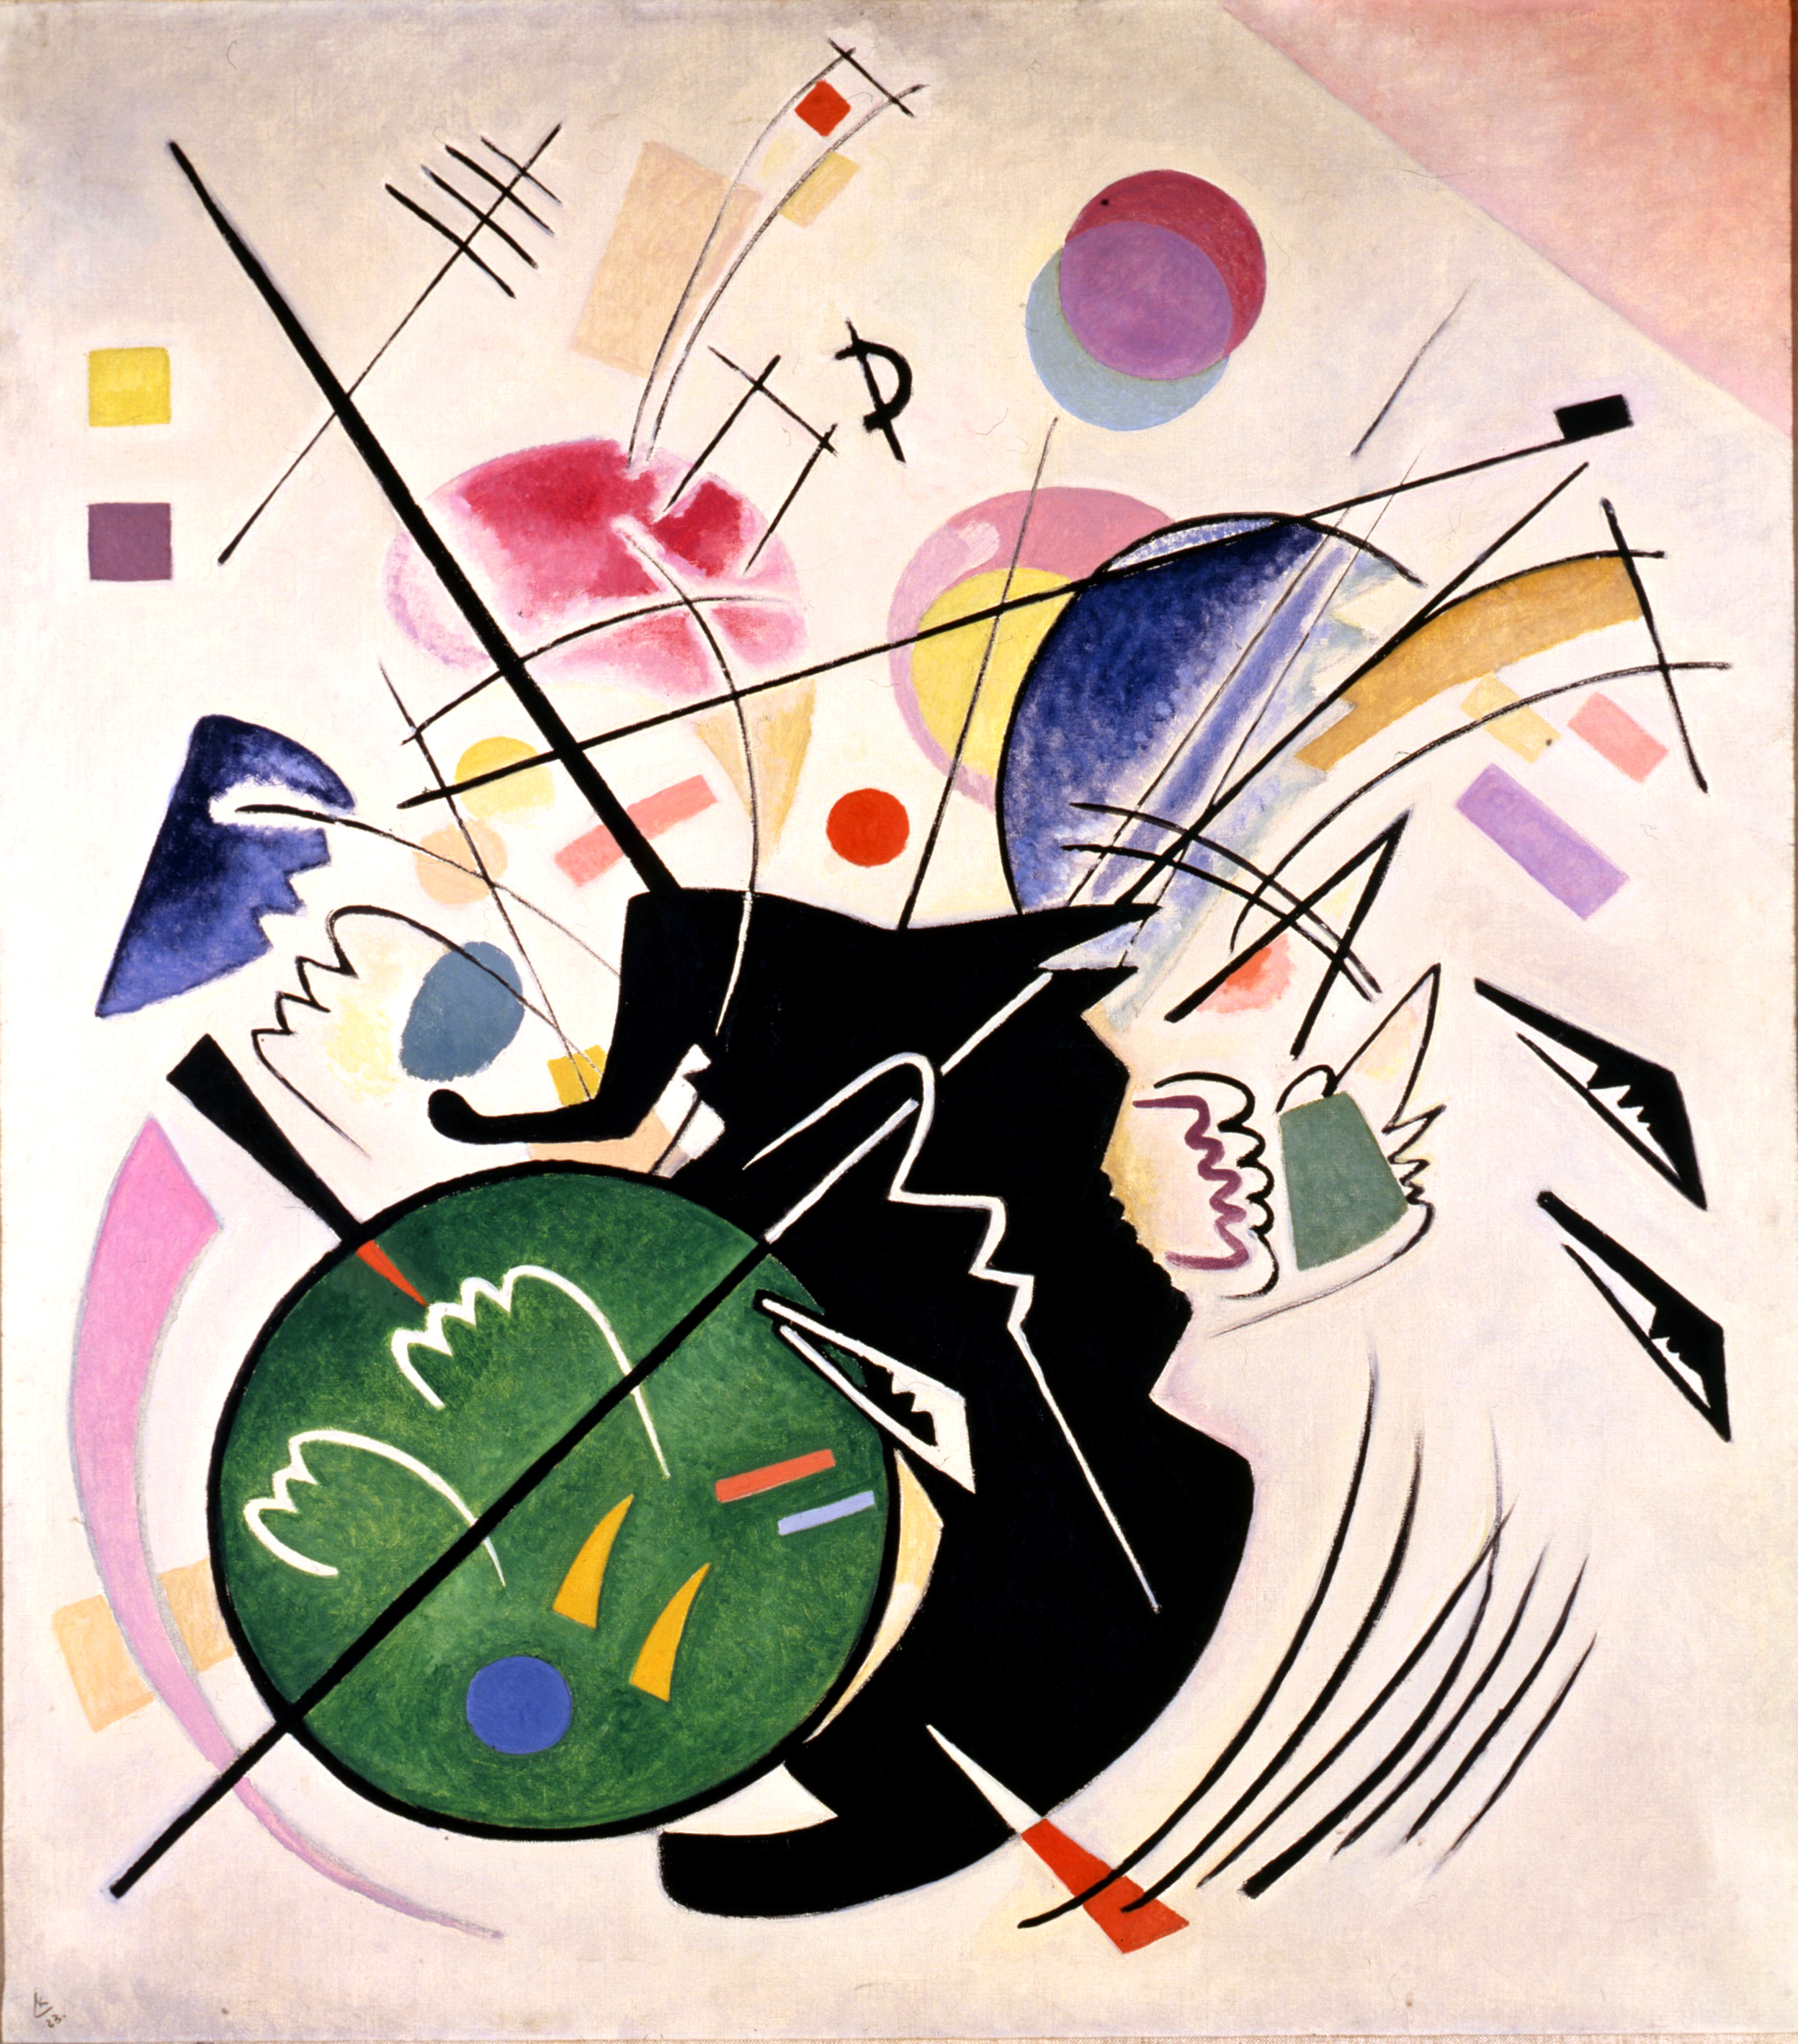 Vasily Kandinsky (1866-1944)  Black Form, 1923  Oil on canvas  110 x 97 cm (43 5/16 x 38 3/16 in.)  Neue Galerie New York. This work is part of the collection of Estée Lauder and was made available through the generosity of Estée Lauder  © 2015 Artists Rights Society (ARS), New York